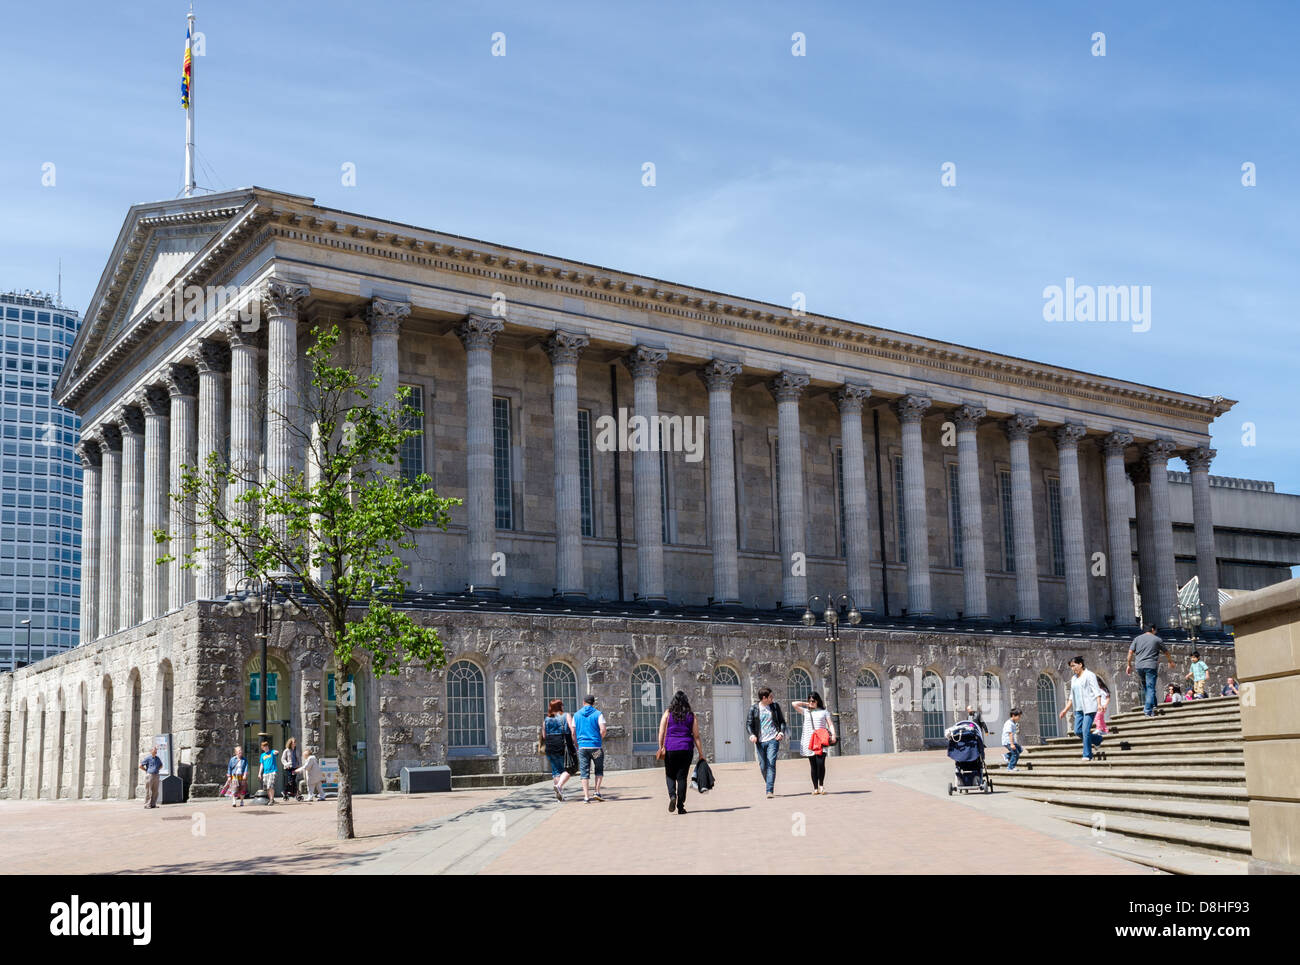 Birmingham Town Hall is a Grade I listed concert hall and venue for popular assemblies opened in 1834 - Stock Image